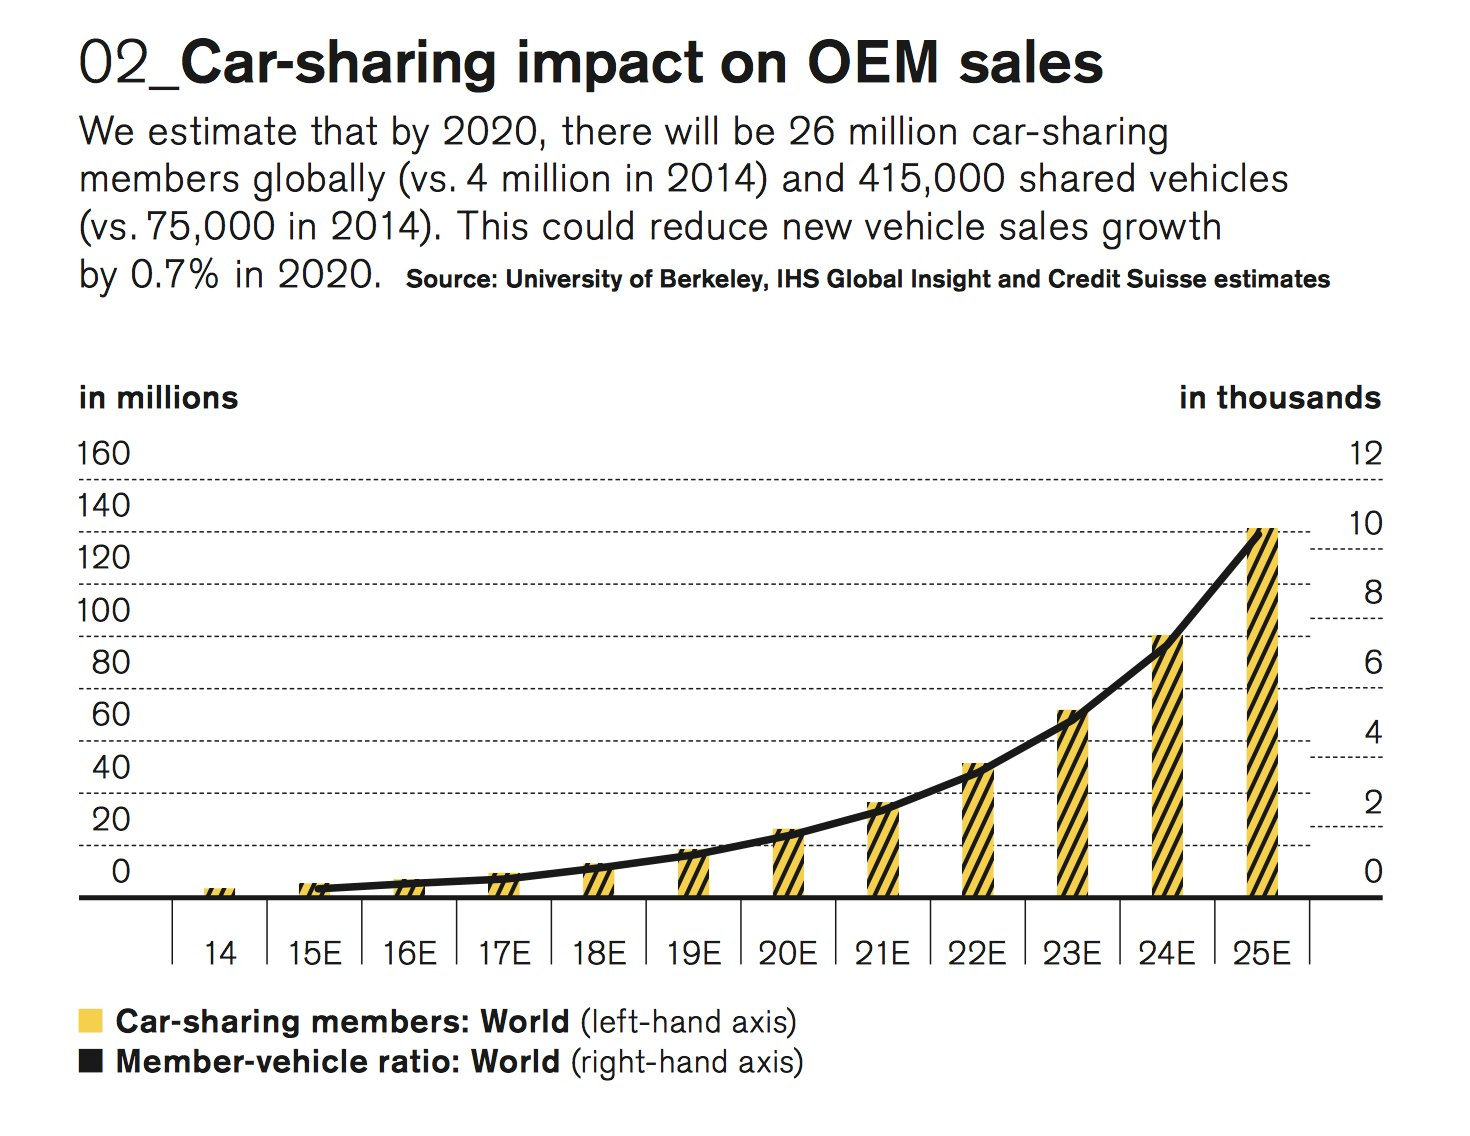 26 million car-sharing members globally by 2020 (4m in 2014) and 415,000 shared vehicles (vs 75,000 in 2014). Impact on new cars sales by 0.7%